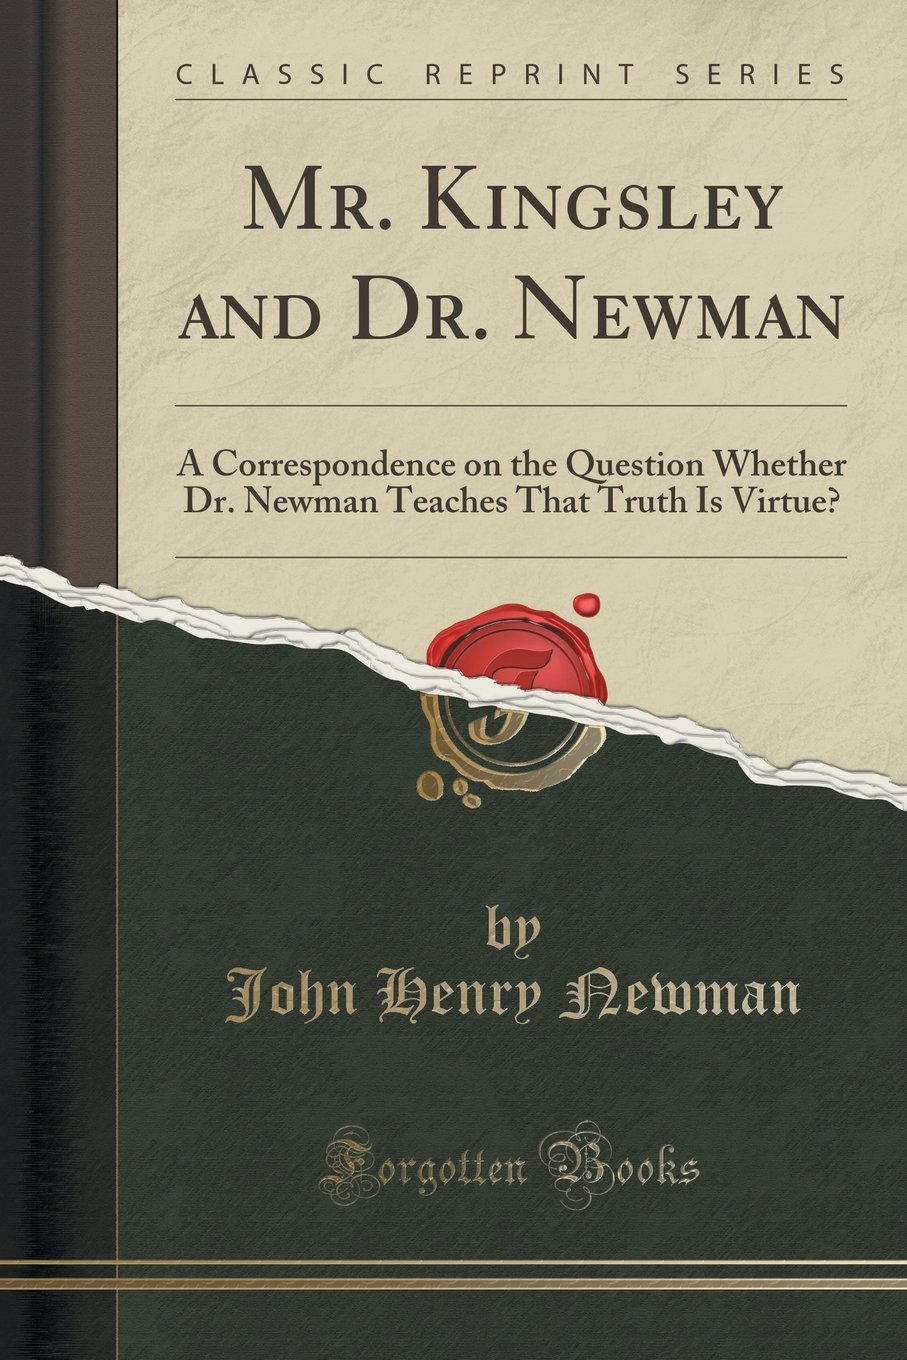 Mr. Kingsley and Dr. Newman: A Correspondence on the Question Whether Dr. Newman Teaches That Truth Is Virtue? (Classic Reprint) PDF